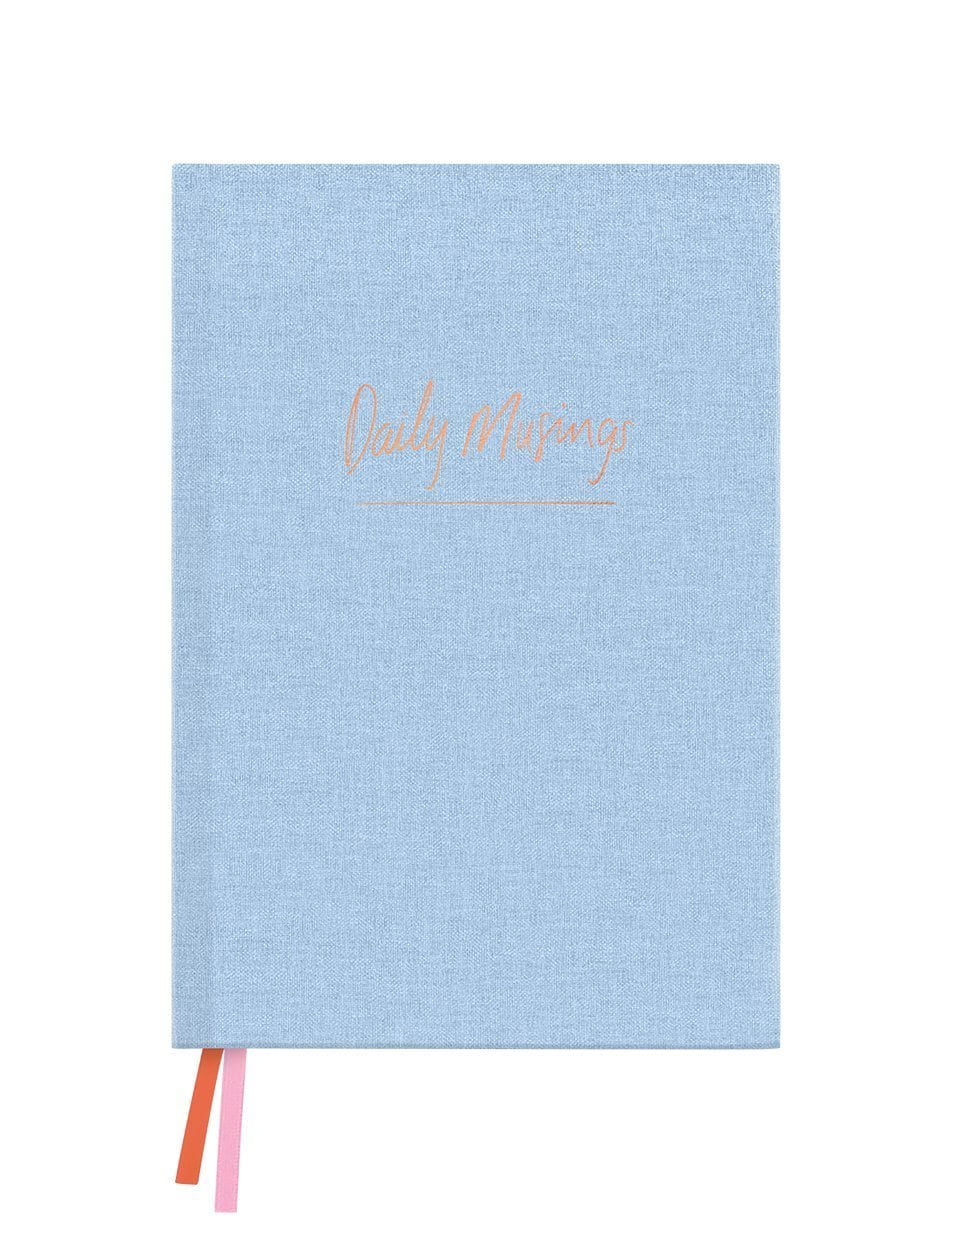 Chambray Musing Linen Notebook